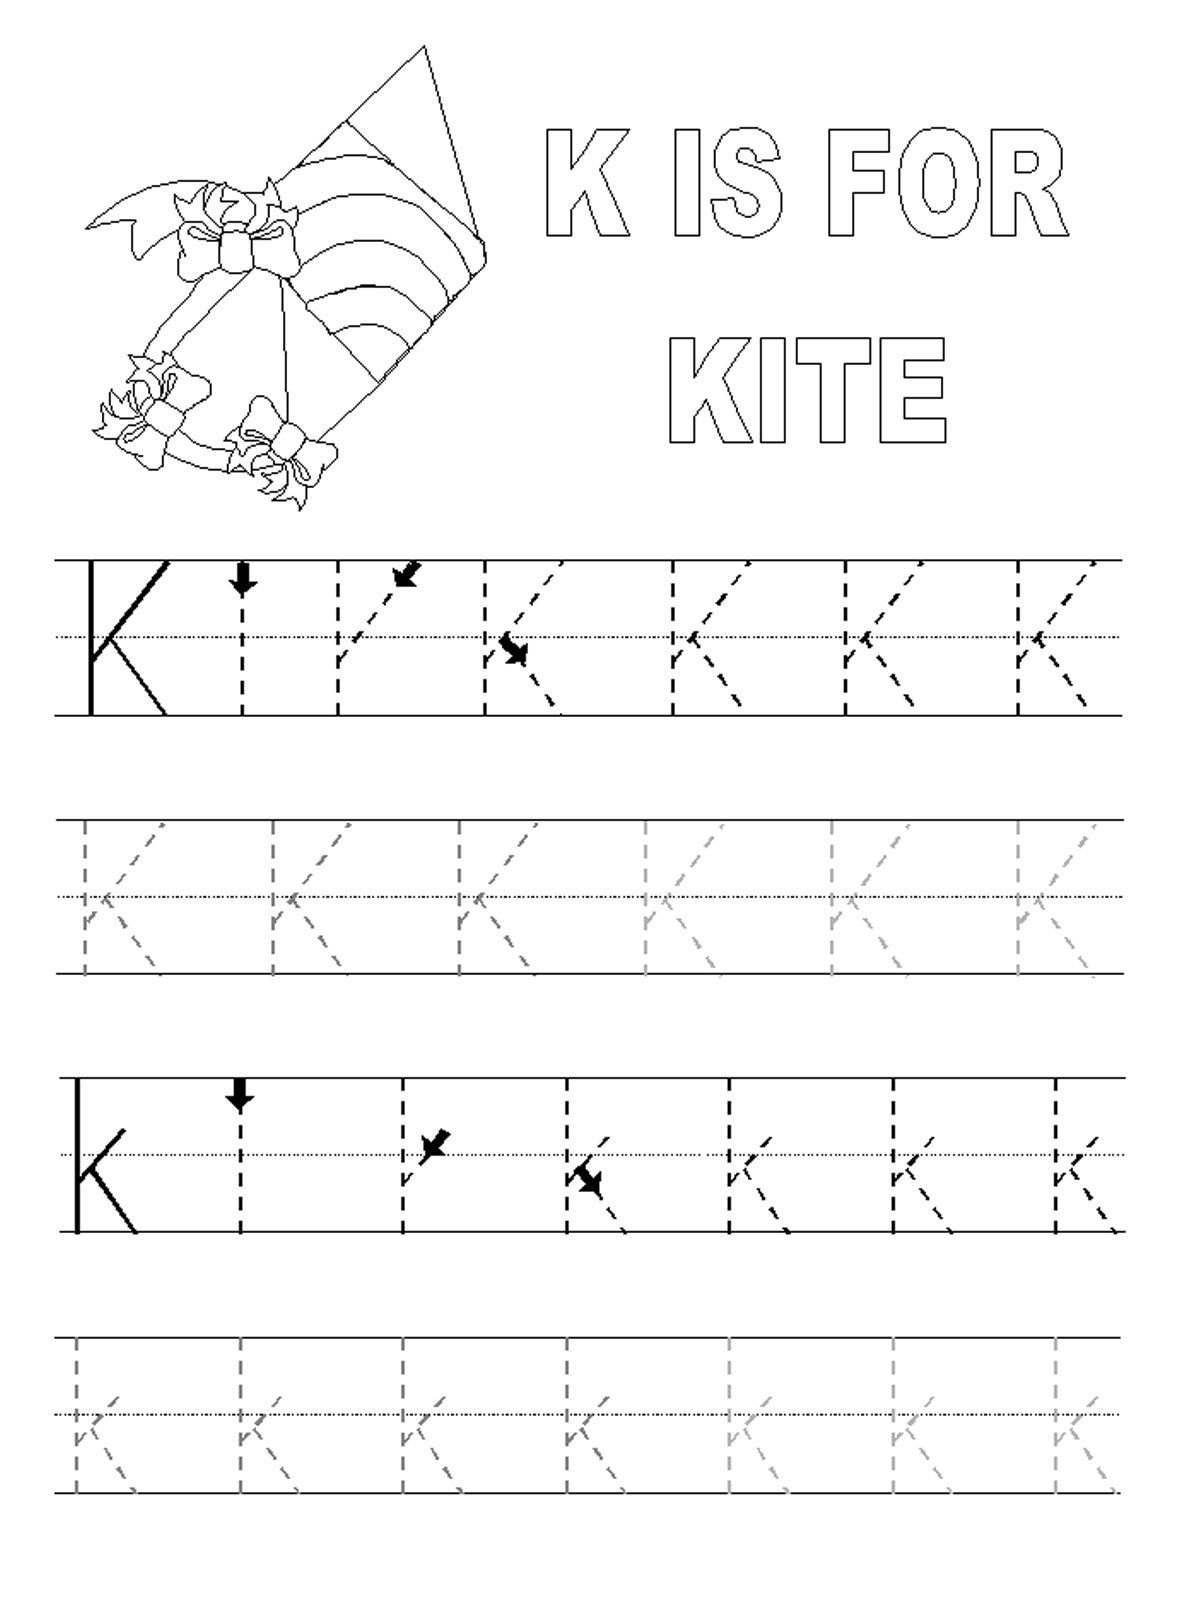 Printable Alphabet Tracing Pages | Alphabet And Numbers Learning - Free Printable Preschool Name Tracer Pages